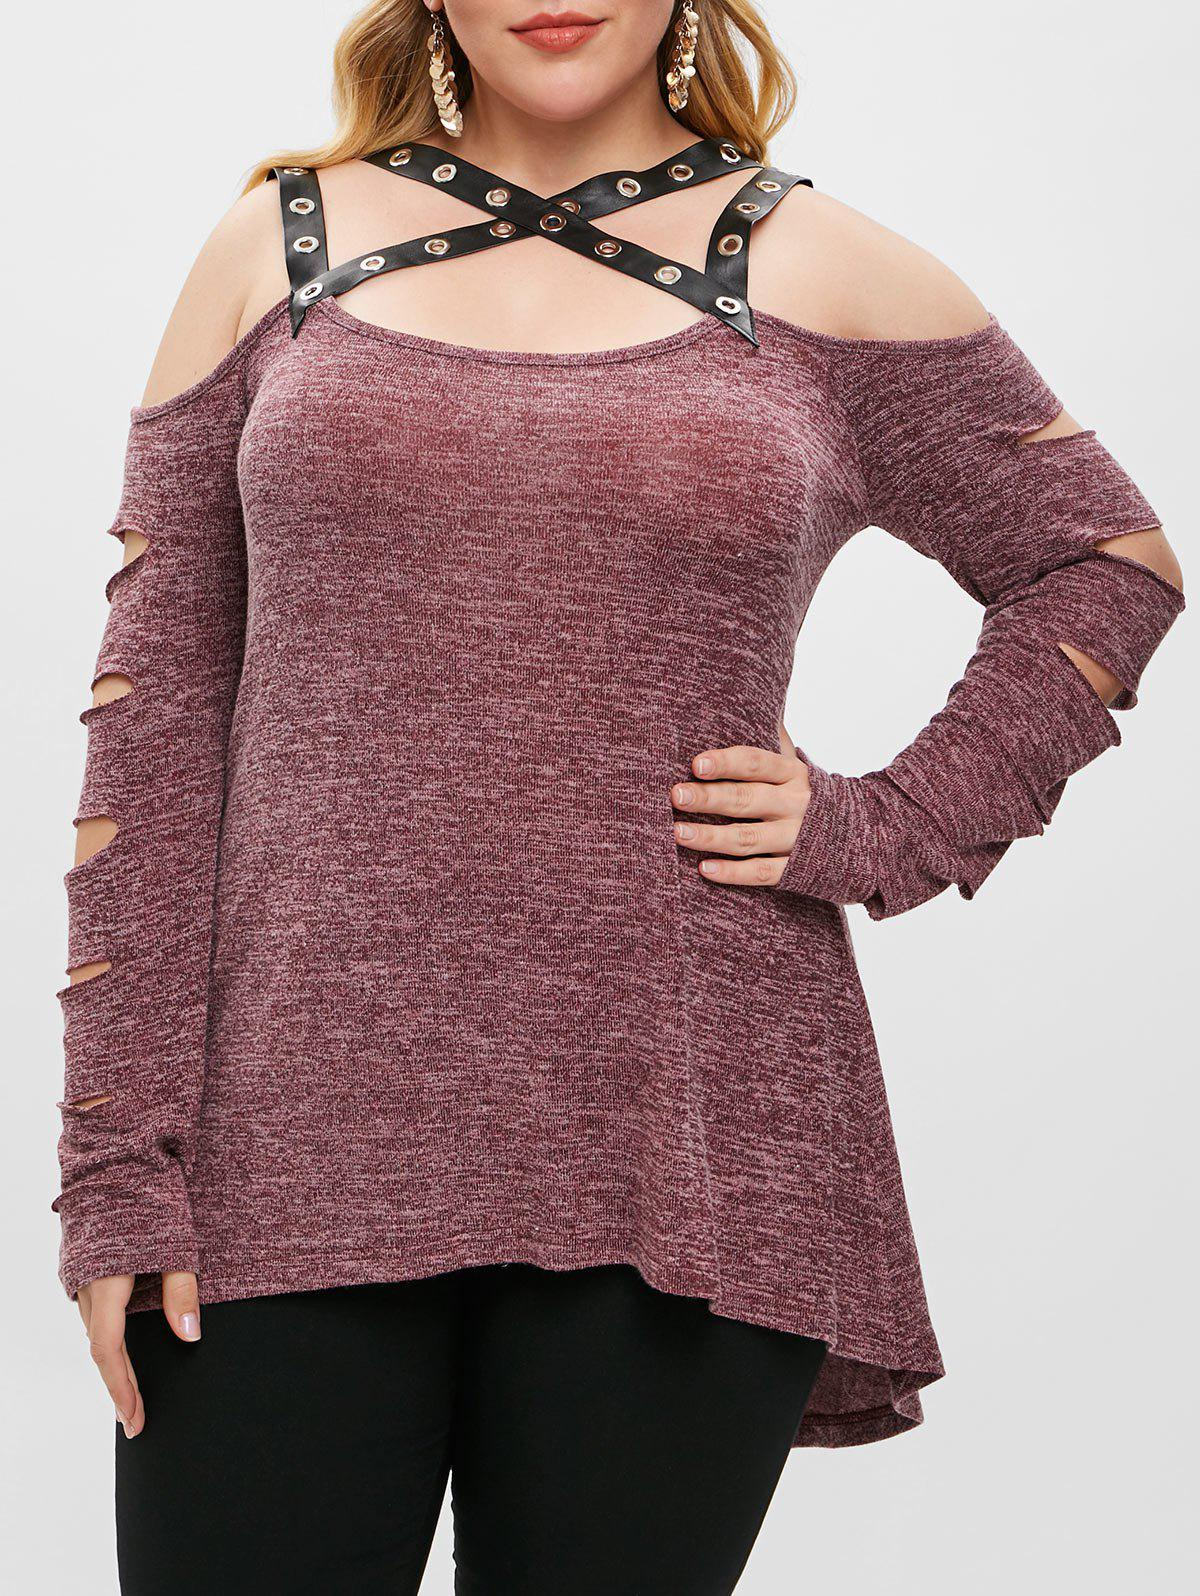 Plus Size Cut Out PU Leather Straps T Shirt - DULL PURPLE 2X